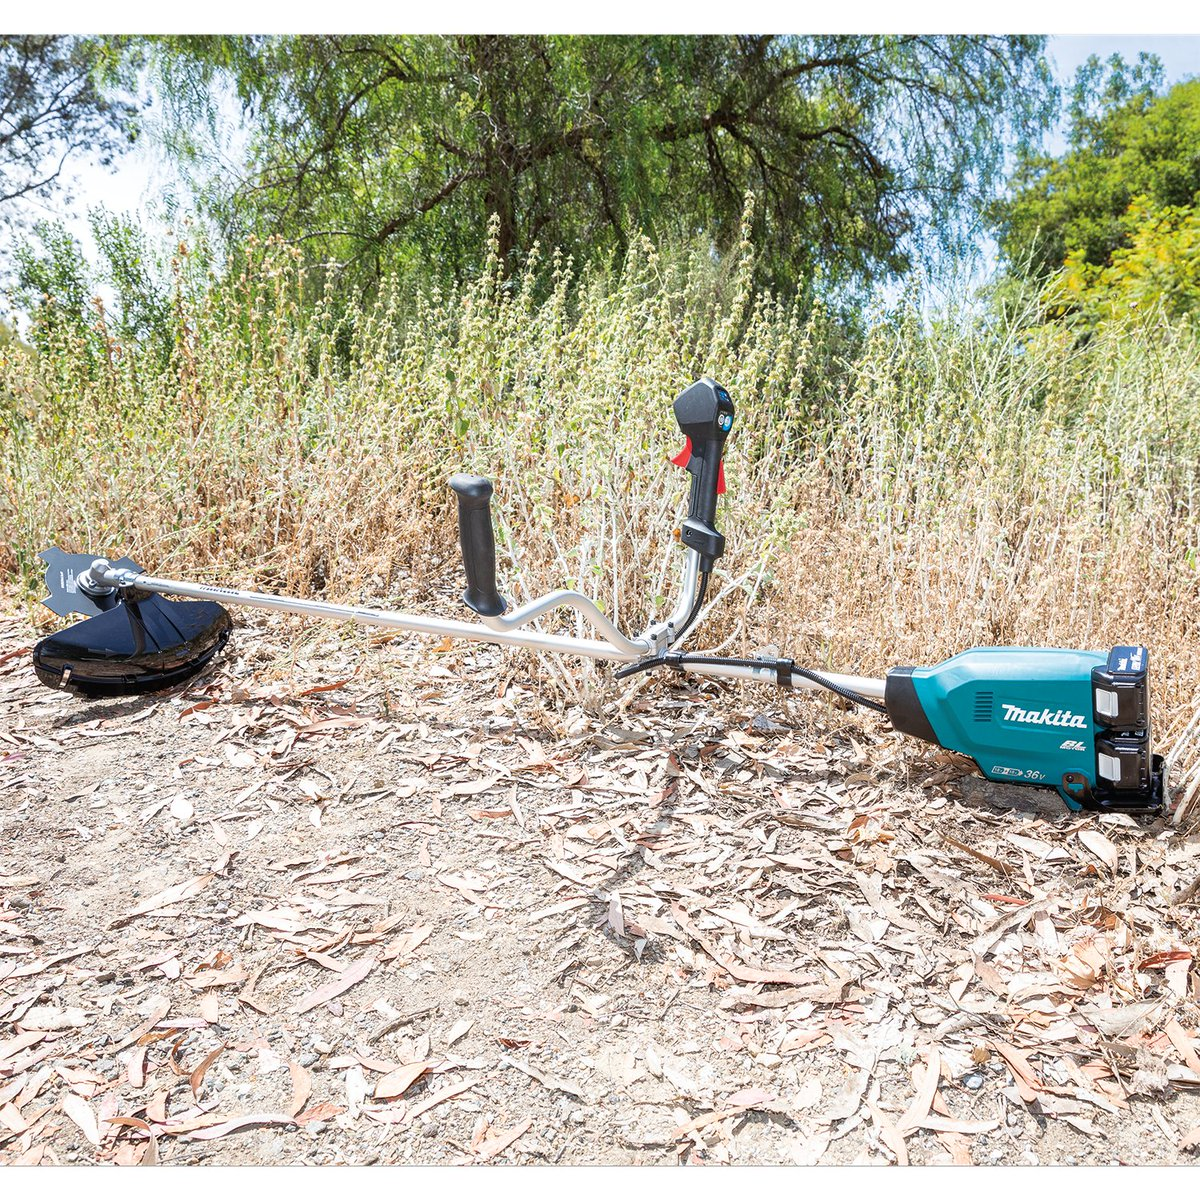 The 18V X2 (36V) LXT Brushless Brush Cutter clears tall grass, weeds and brush. It has the power of a 30cc gas #brushcutter, w/o the hassles of gas. The bike handle offers improved grip and ergonomics.  #makitausa #makitatools #ruletheoutdoors #xru16